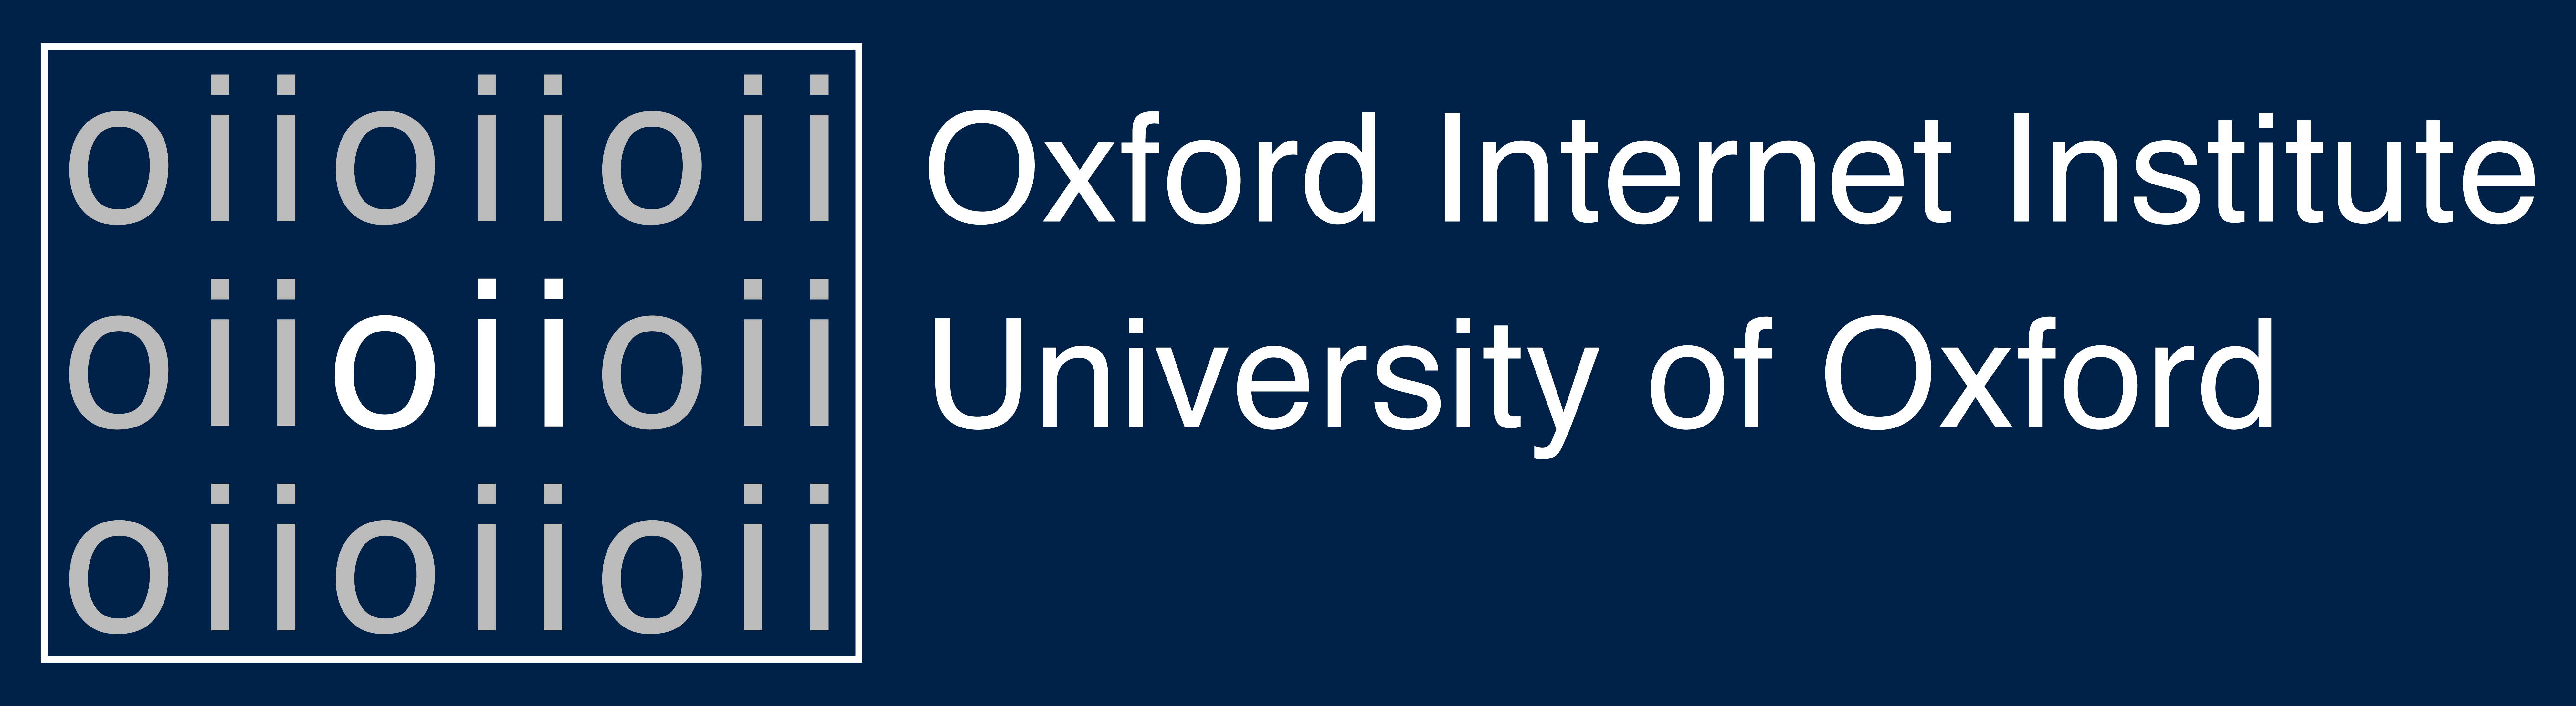 Classroom Design And Organization ~ Oxford internet institute university of hastac